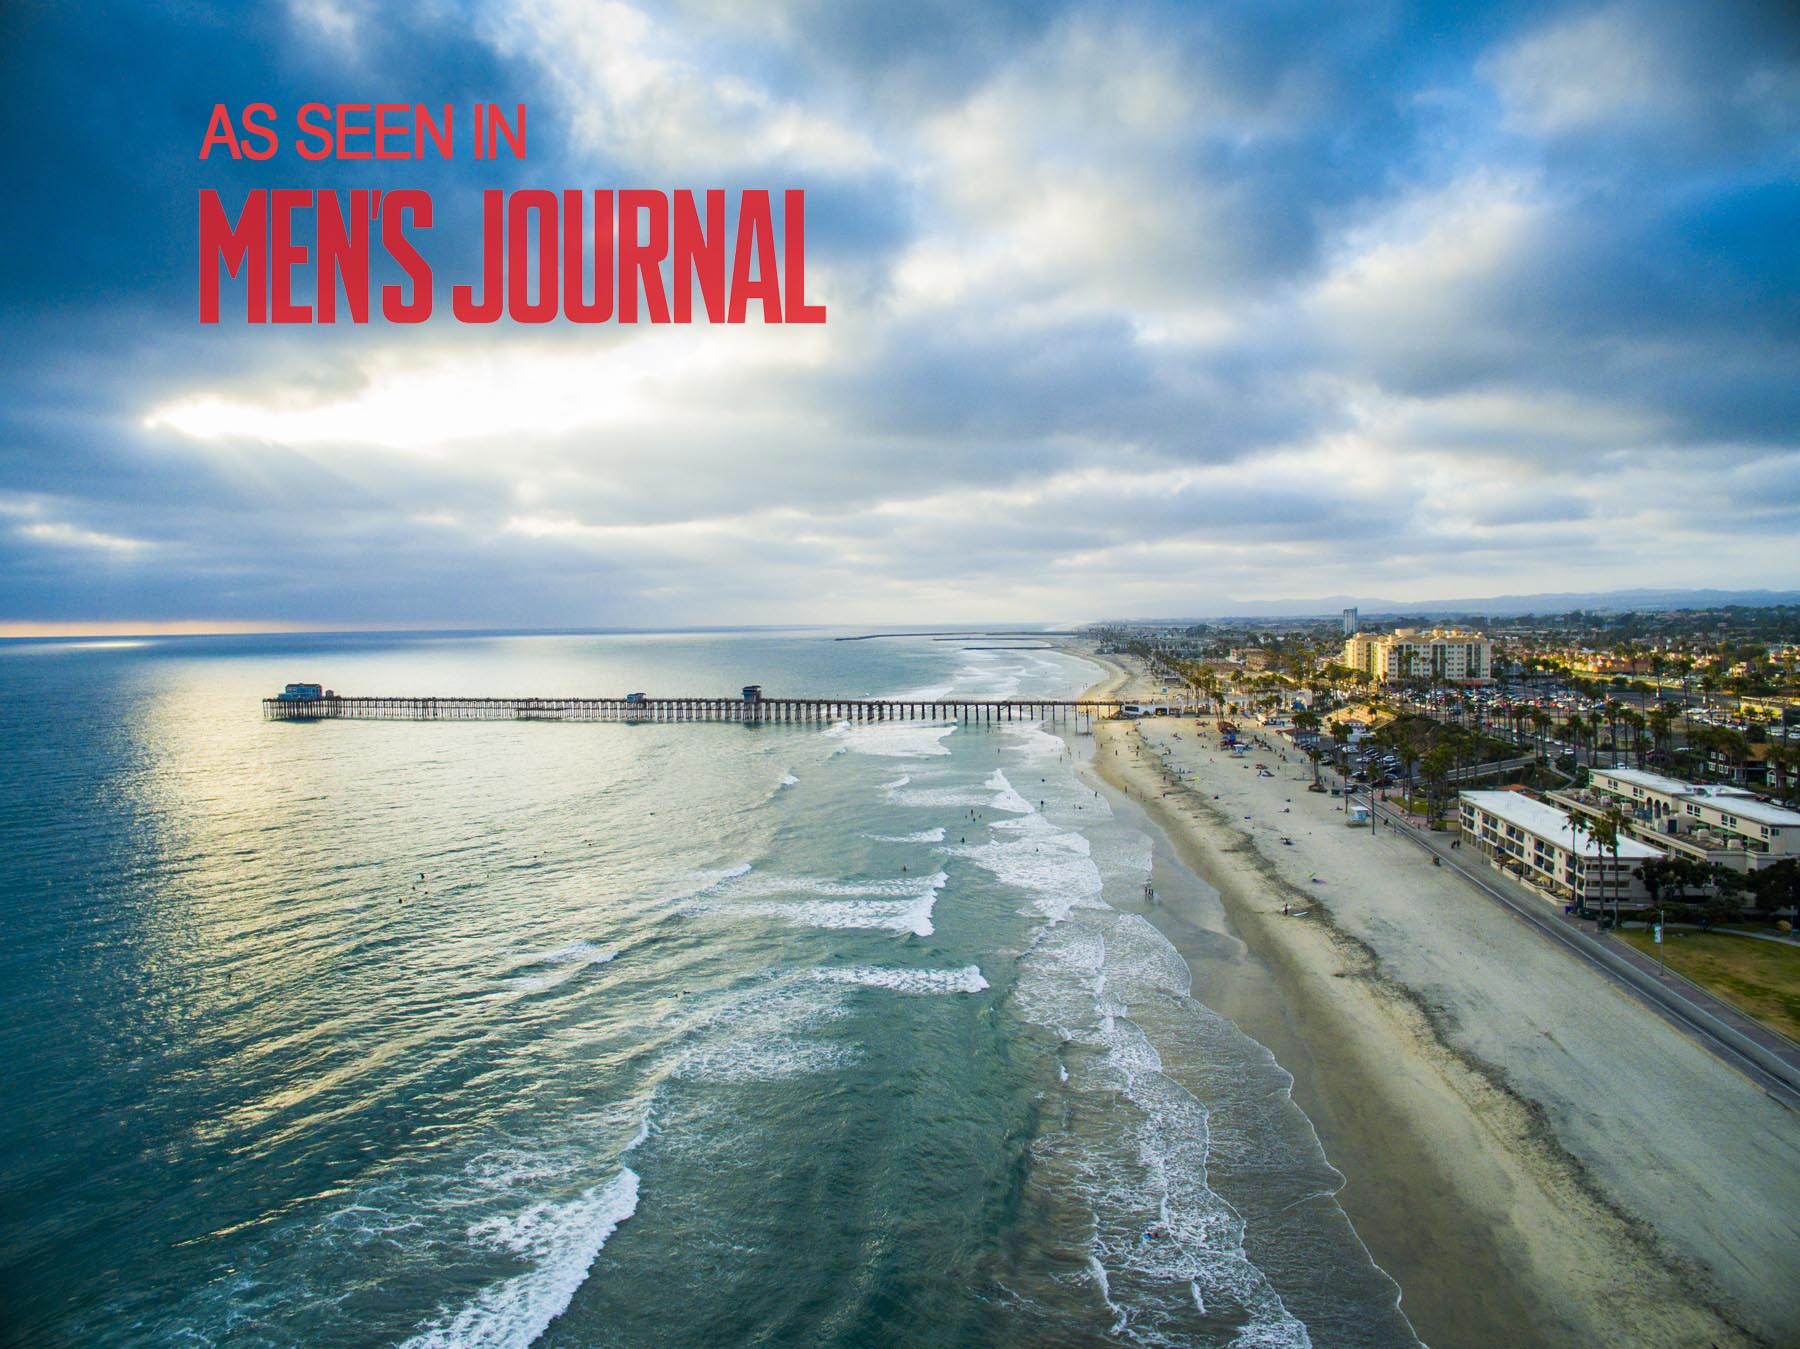 Drone Photograph of Oceanside Pier at Sunset with Mens Journal Logo